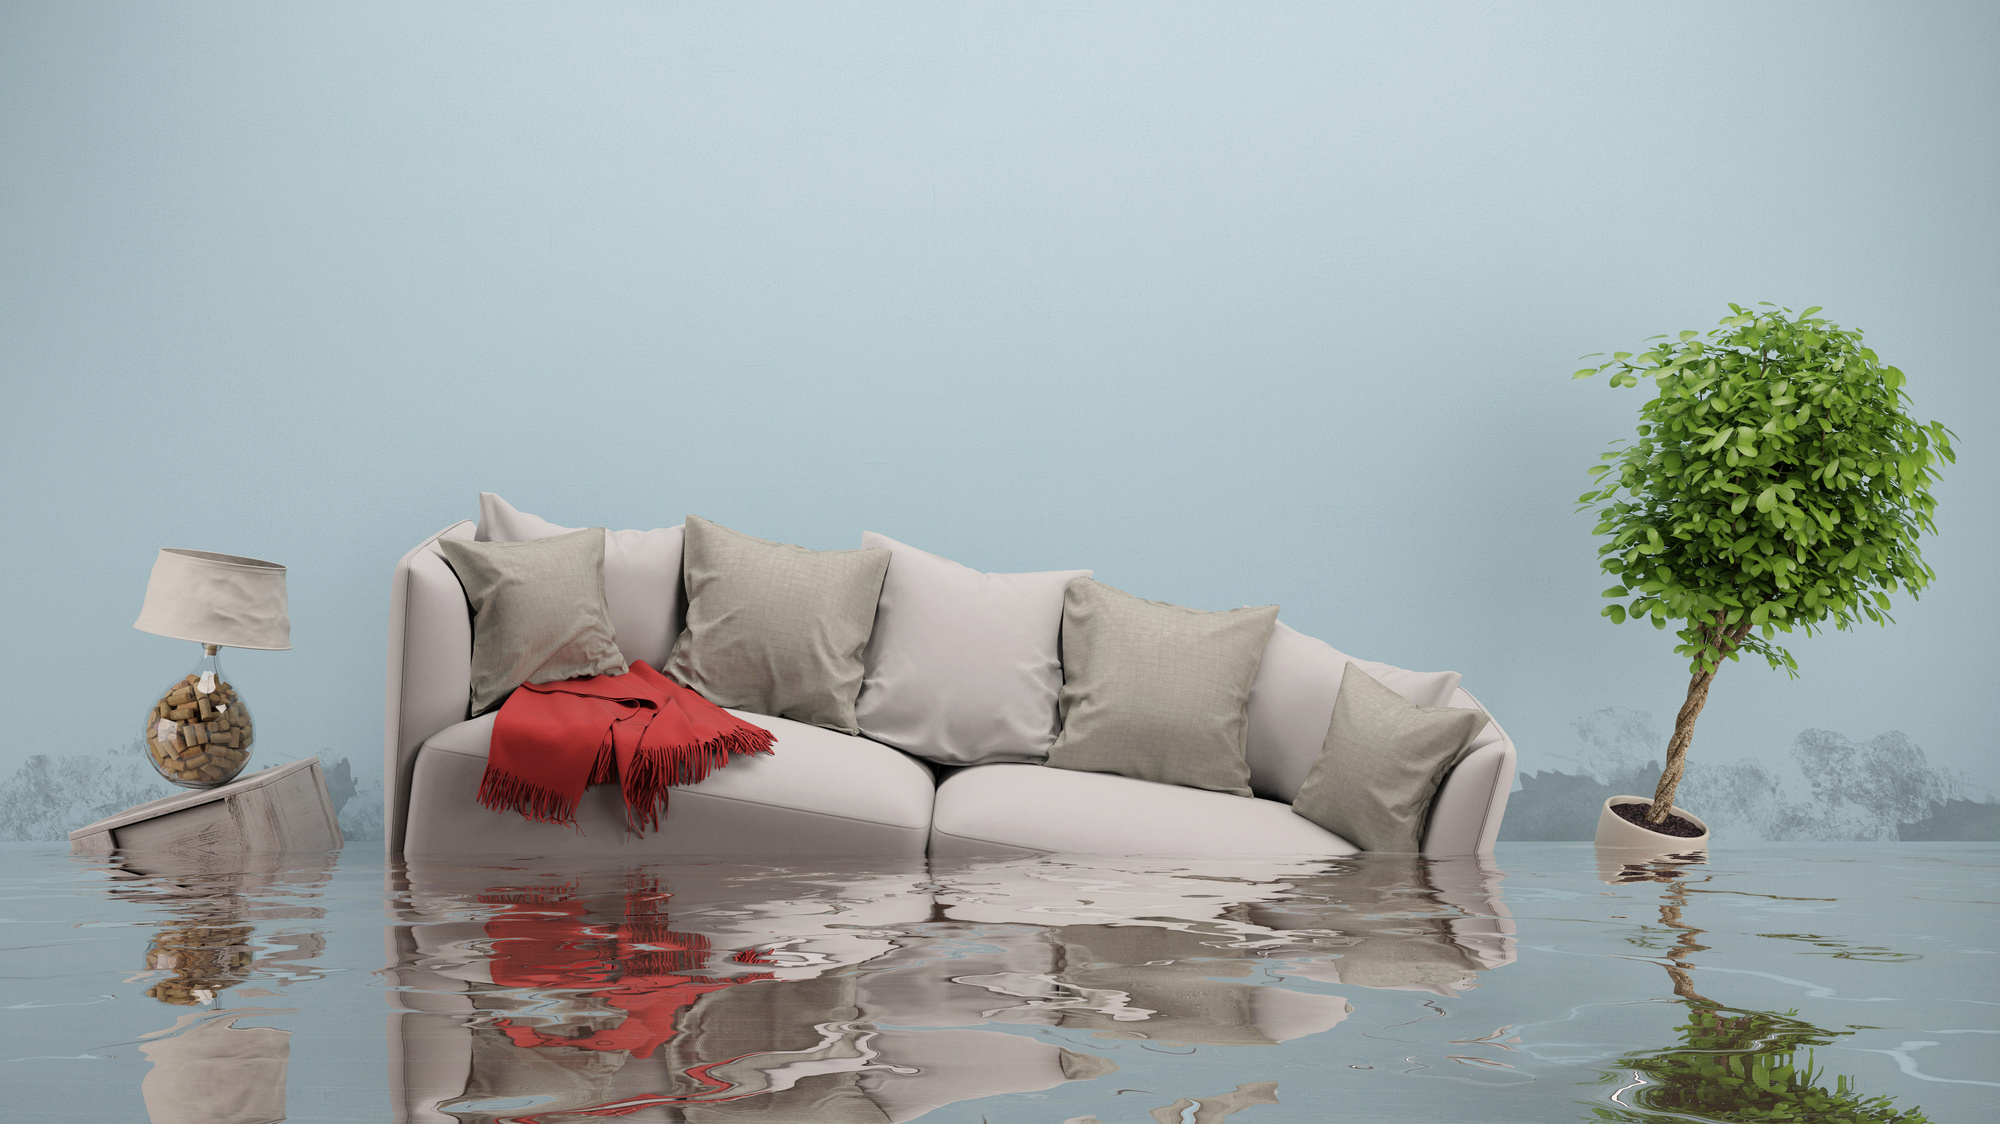 commercial flood insurance